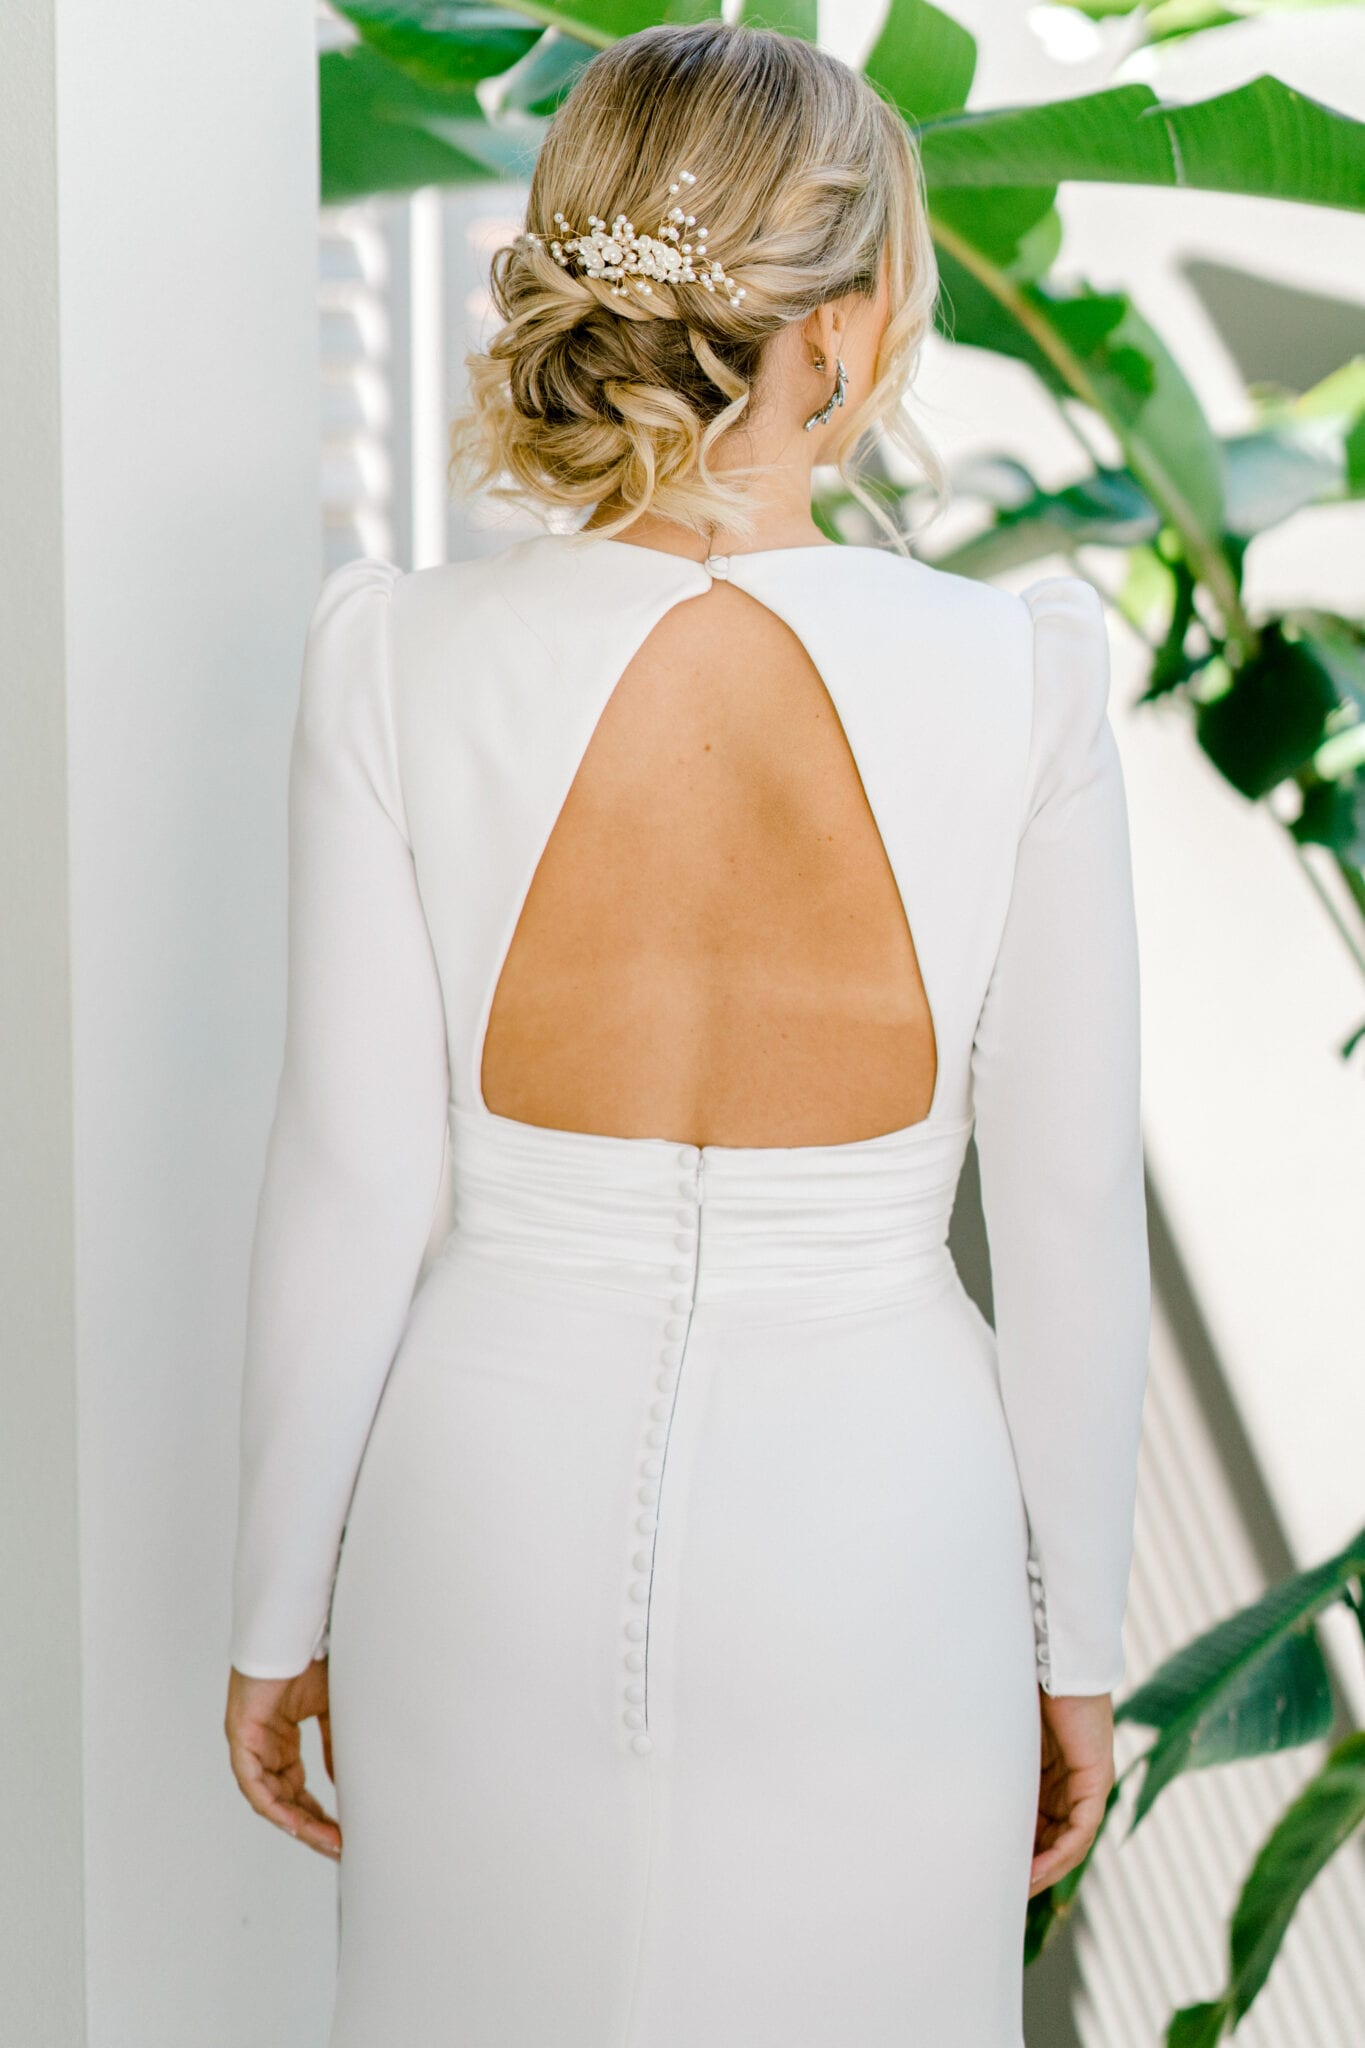 ADRIENNE-Pronovias-Modern-Crepe-Wedding-Gown-Sleeves-White-Lily-Couture-Brisbane (10)